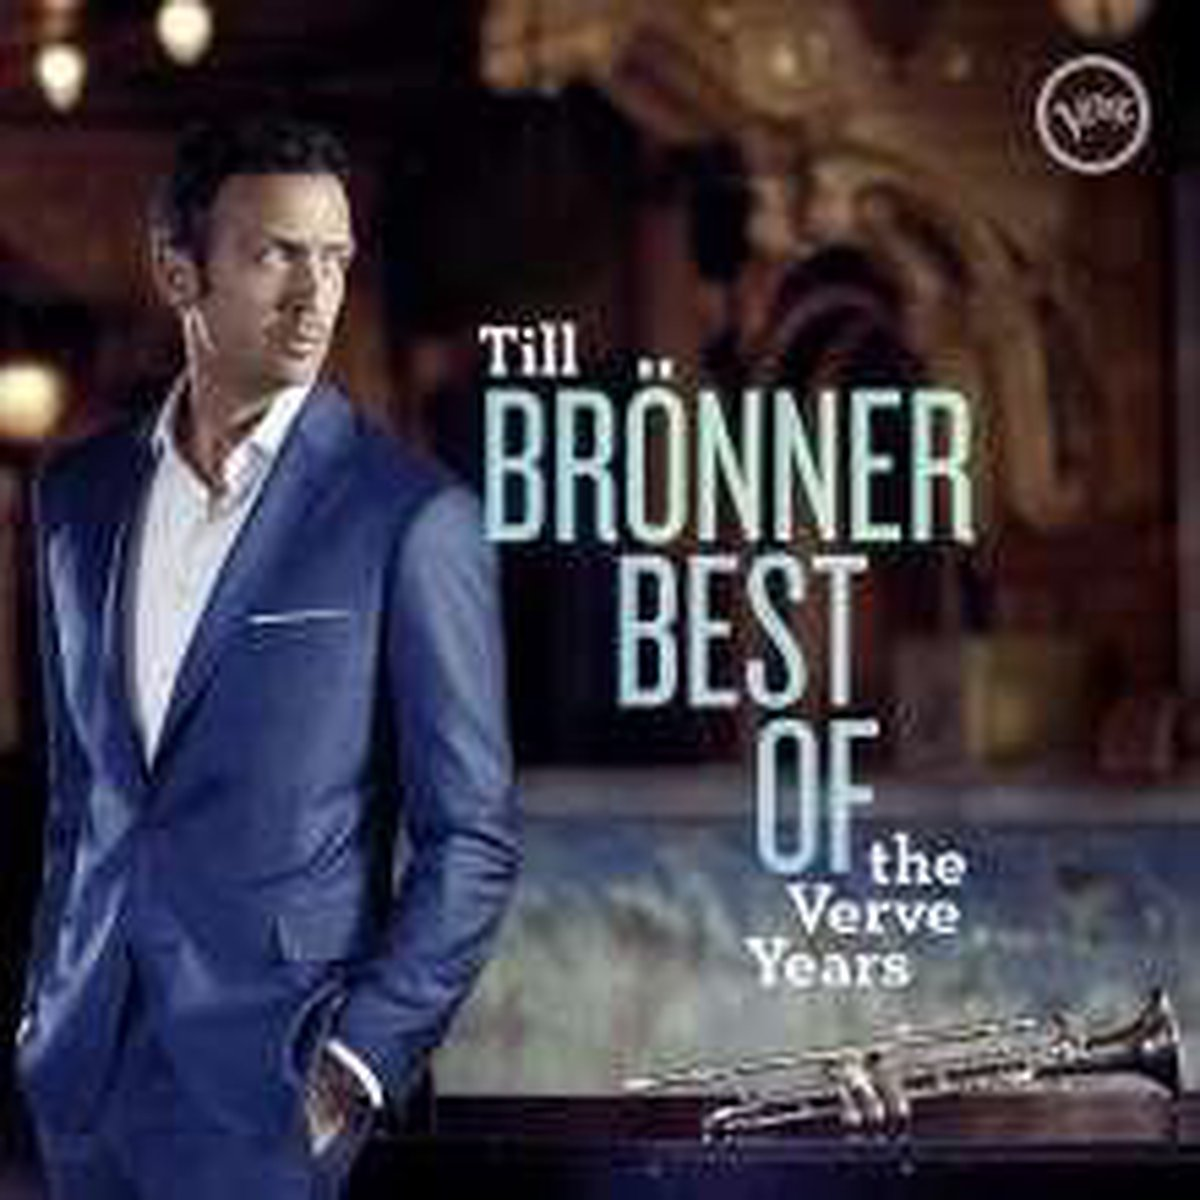 Best of the Verve Years - Till Bronner